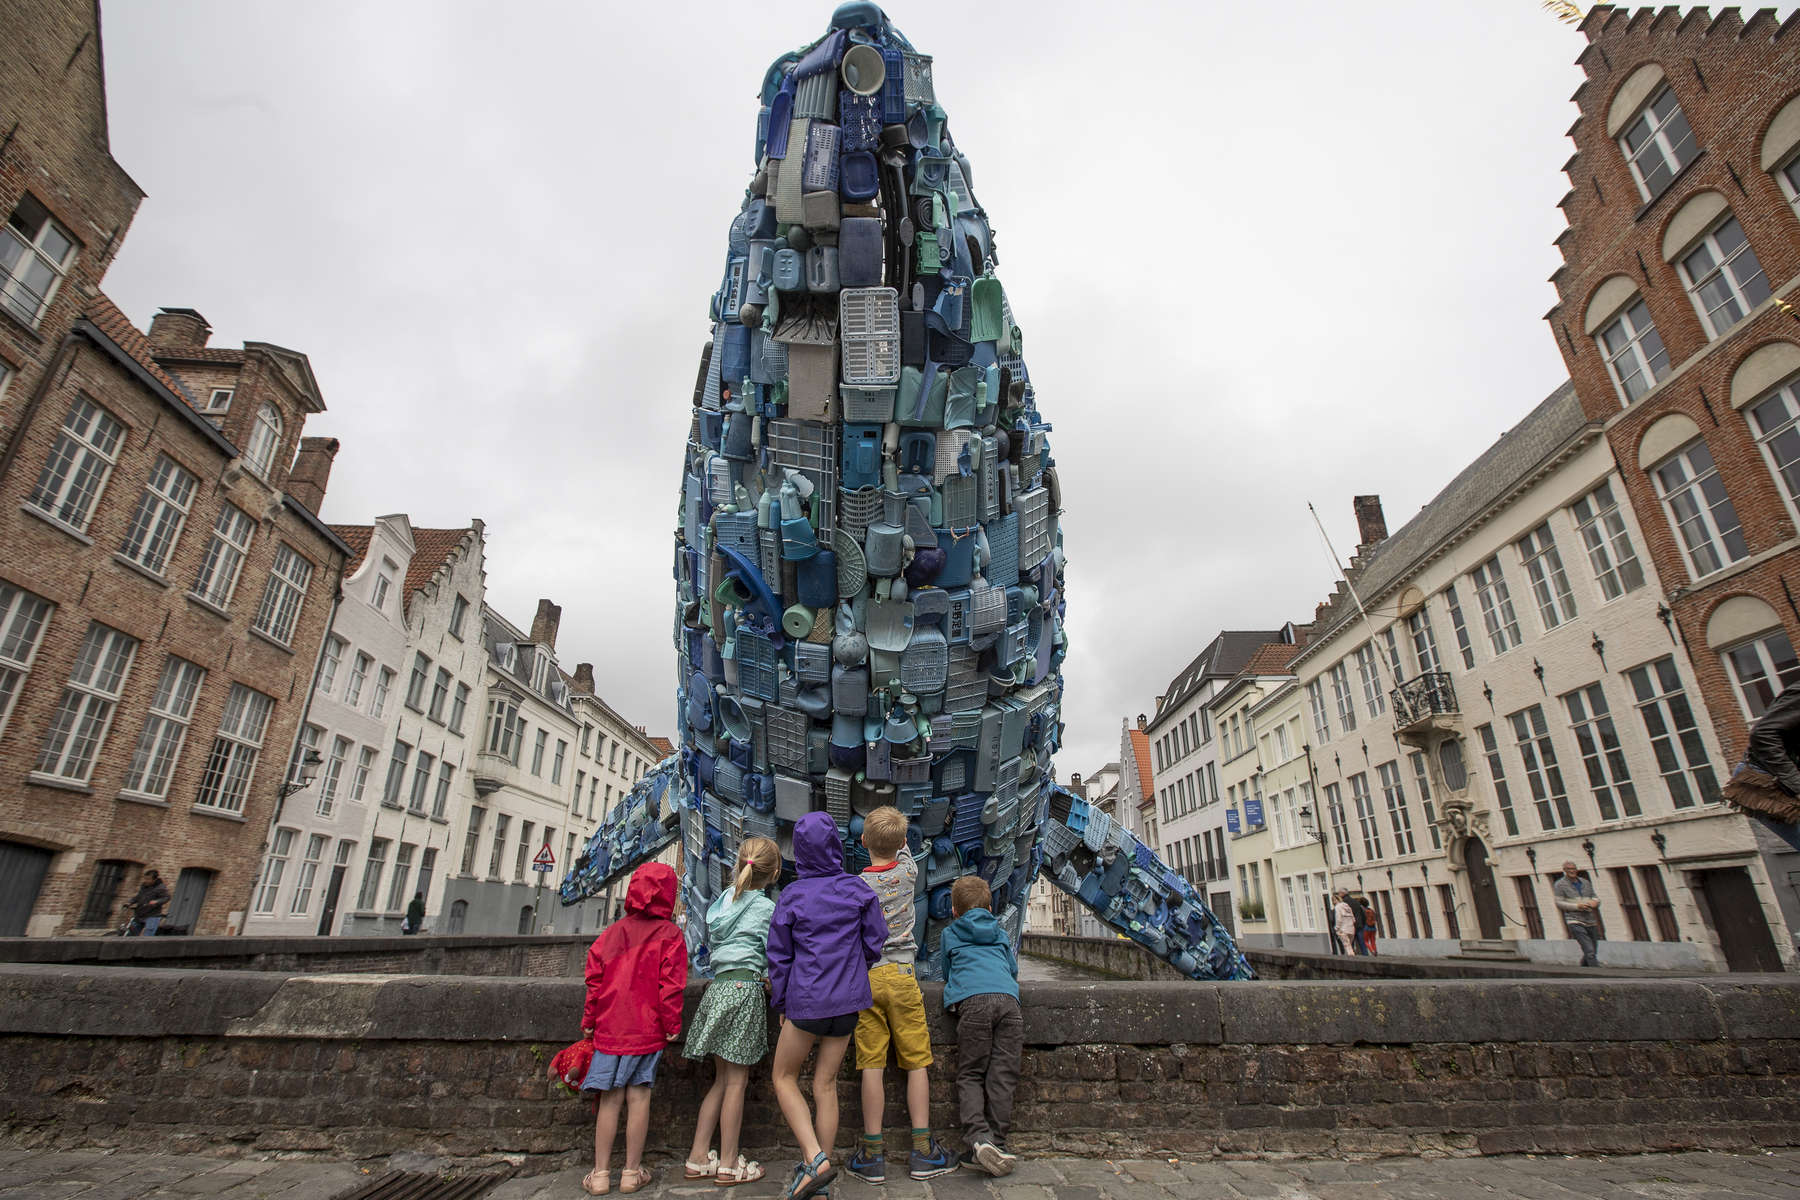 Triënnale 2018; STUDIOKCA - 'Skyscraper (the Bruges Whale)'_photo by Matthias Desmet